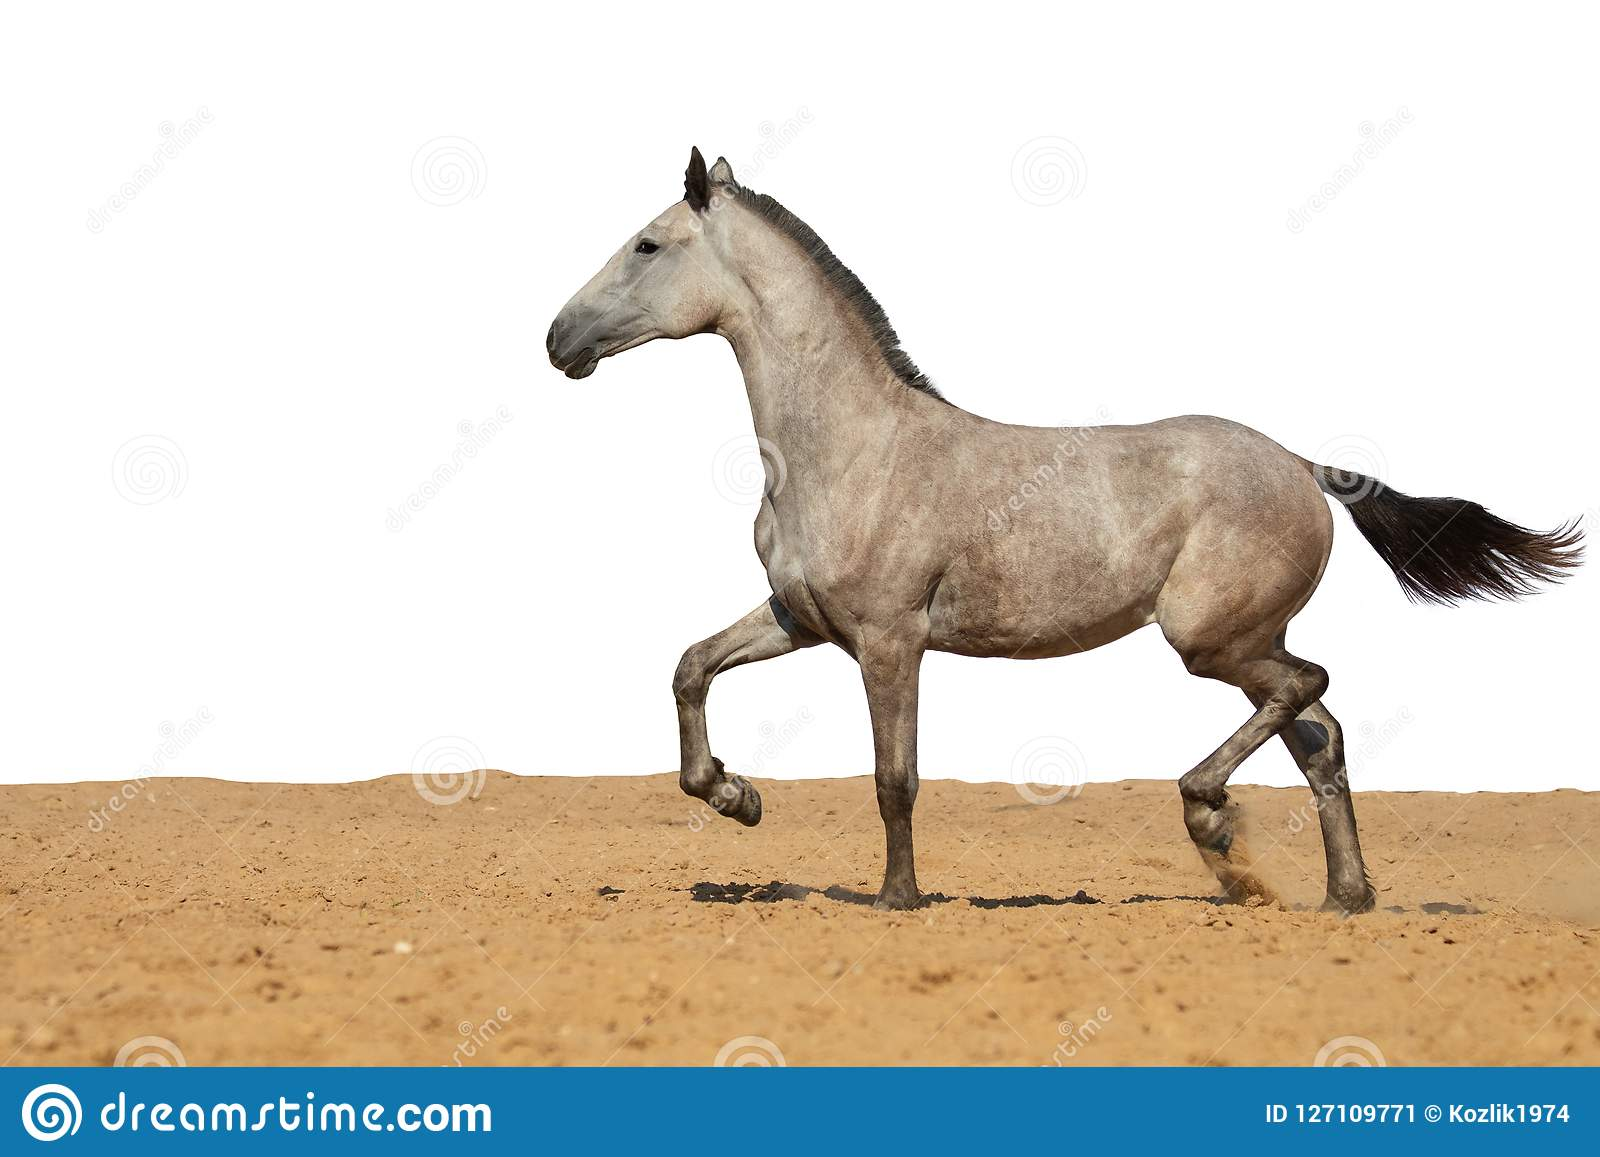 Gray horse foal galloping on sand on a white background